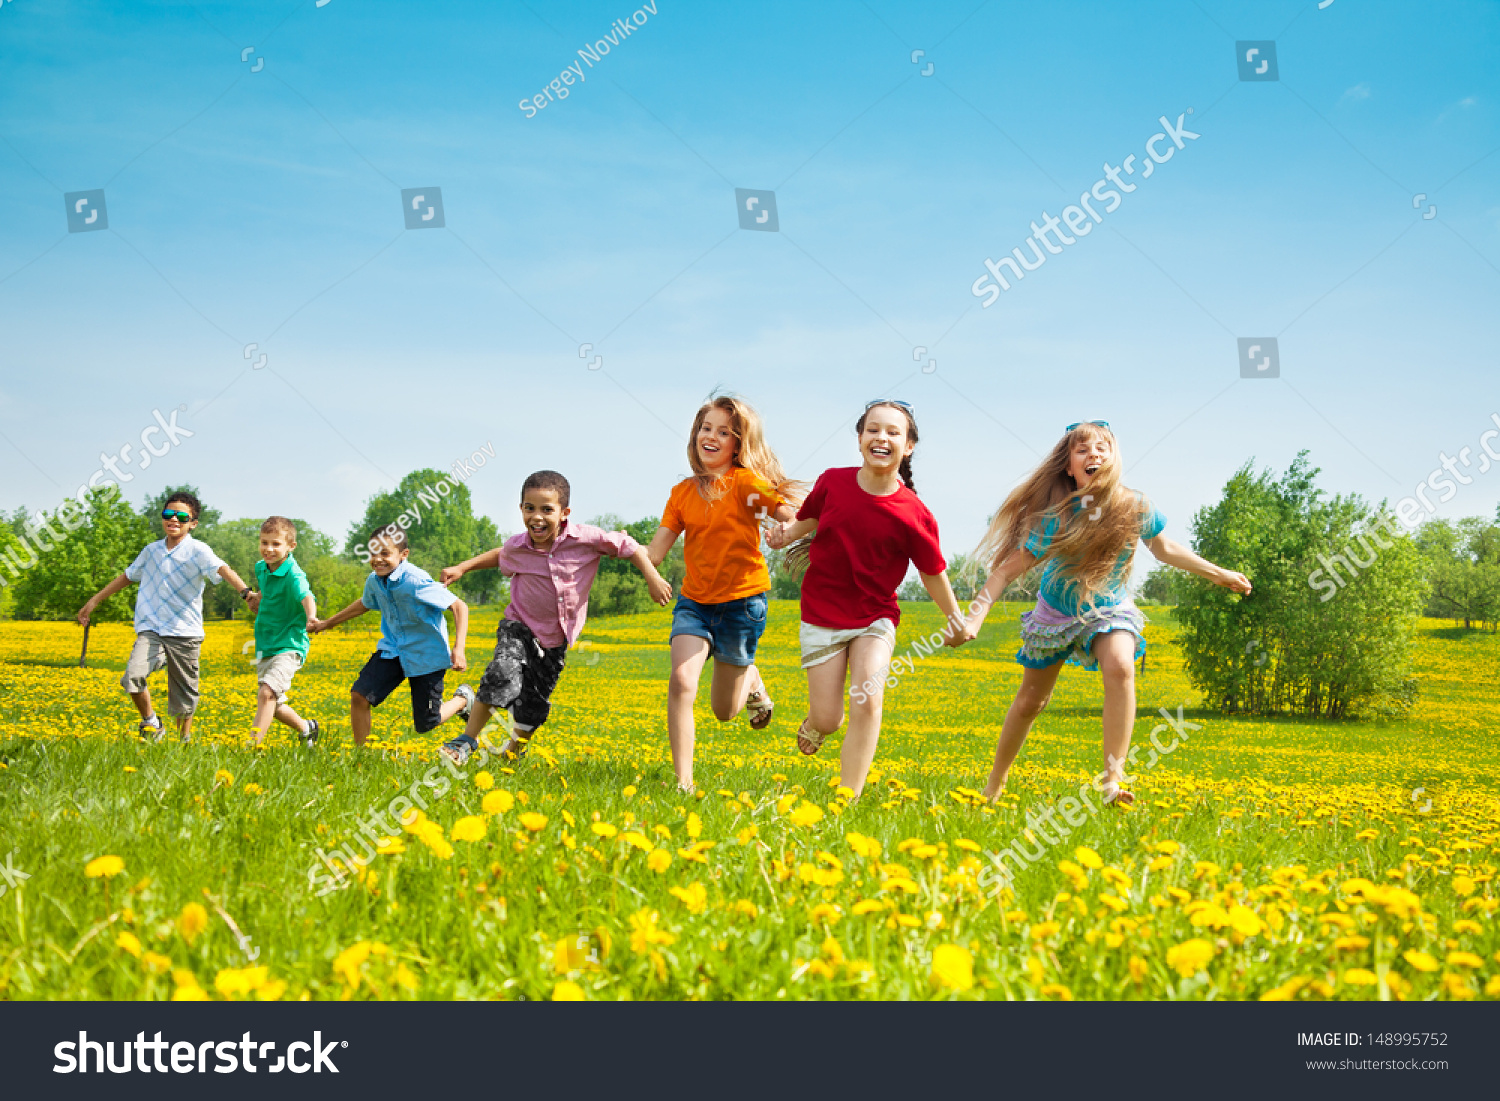 stock-photo-group-of-seven-running-in-the-park-kids-boys-and-girls-black-and-caucasian-148995752